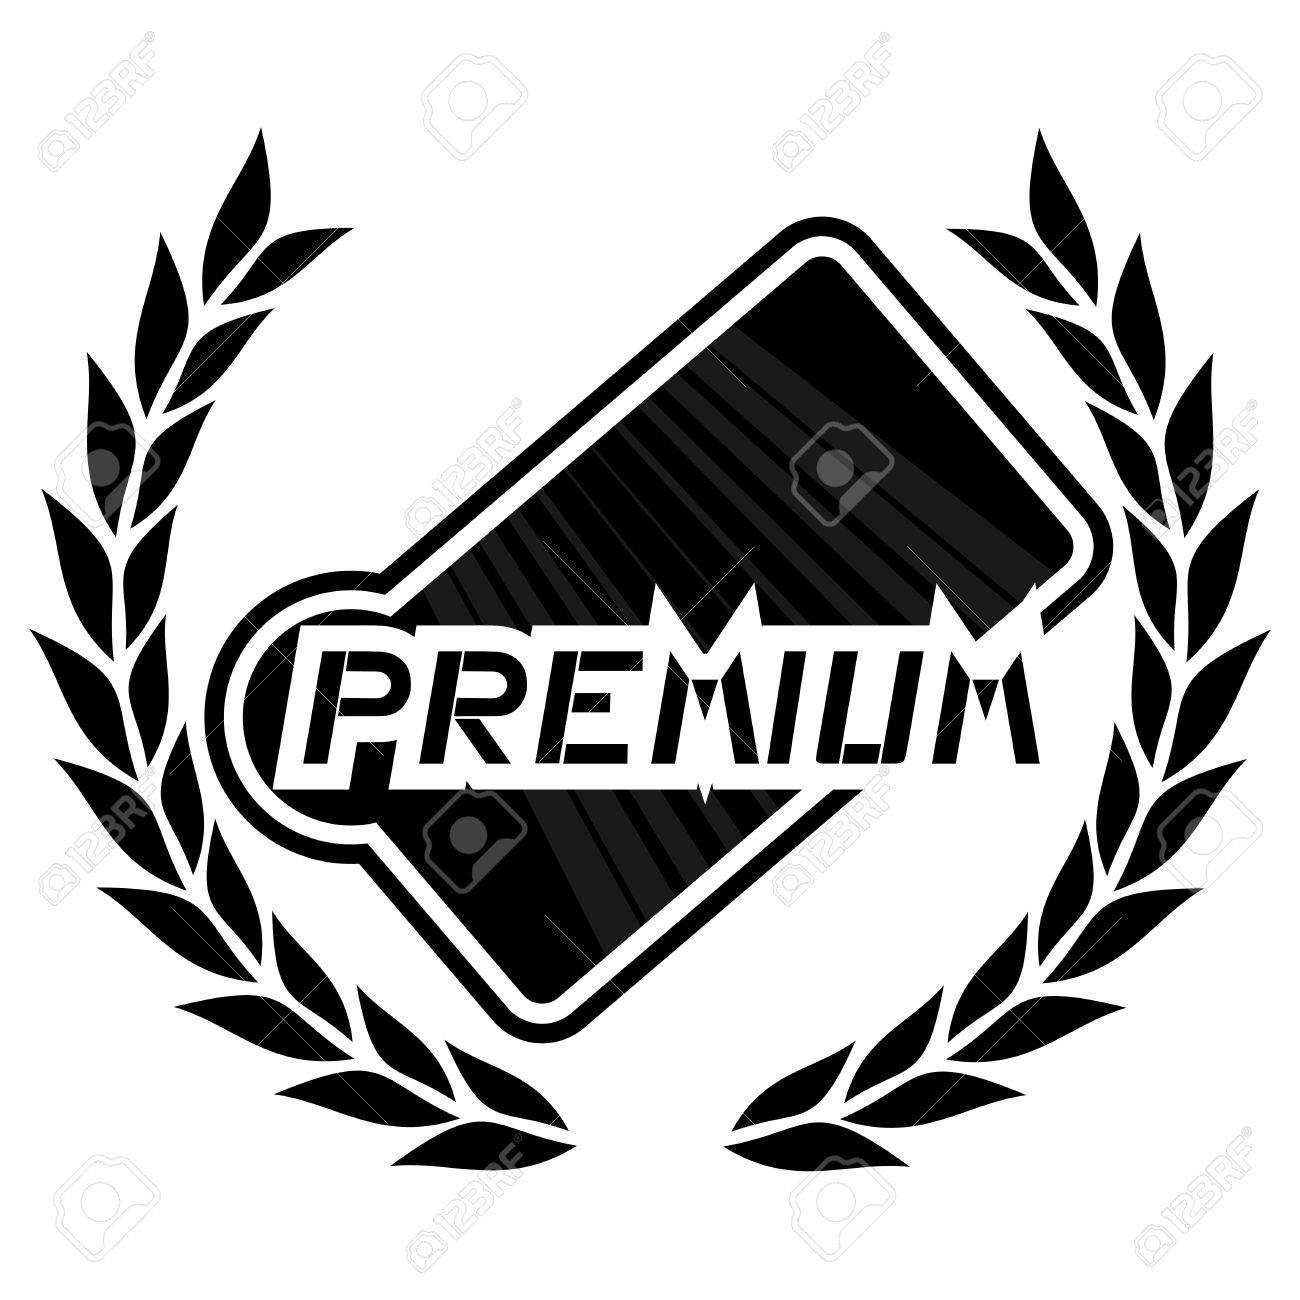 Premium emblem design Stock Vector - 14457088